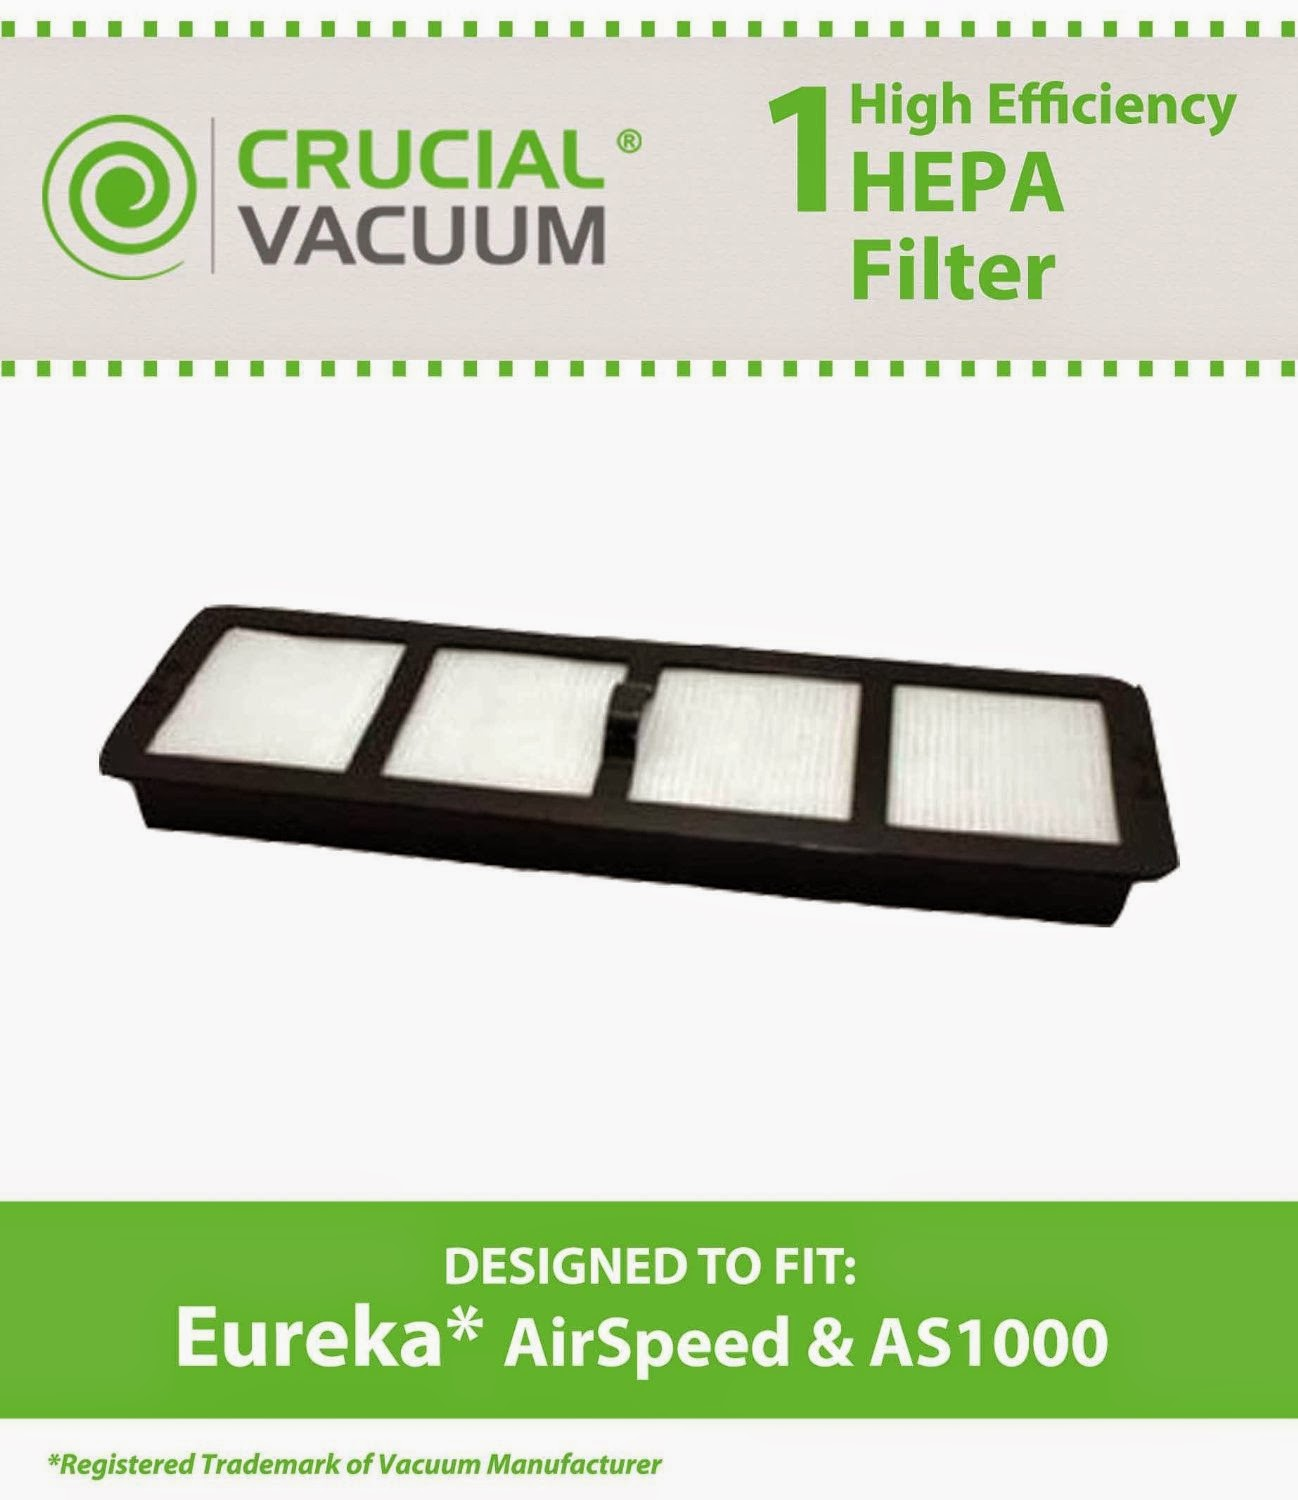 airspeed as1000 series upright eureka vacuum filters - Eureka Vacuum Filters